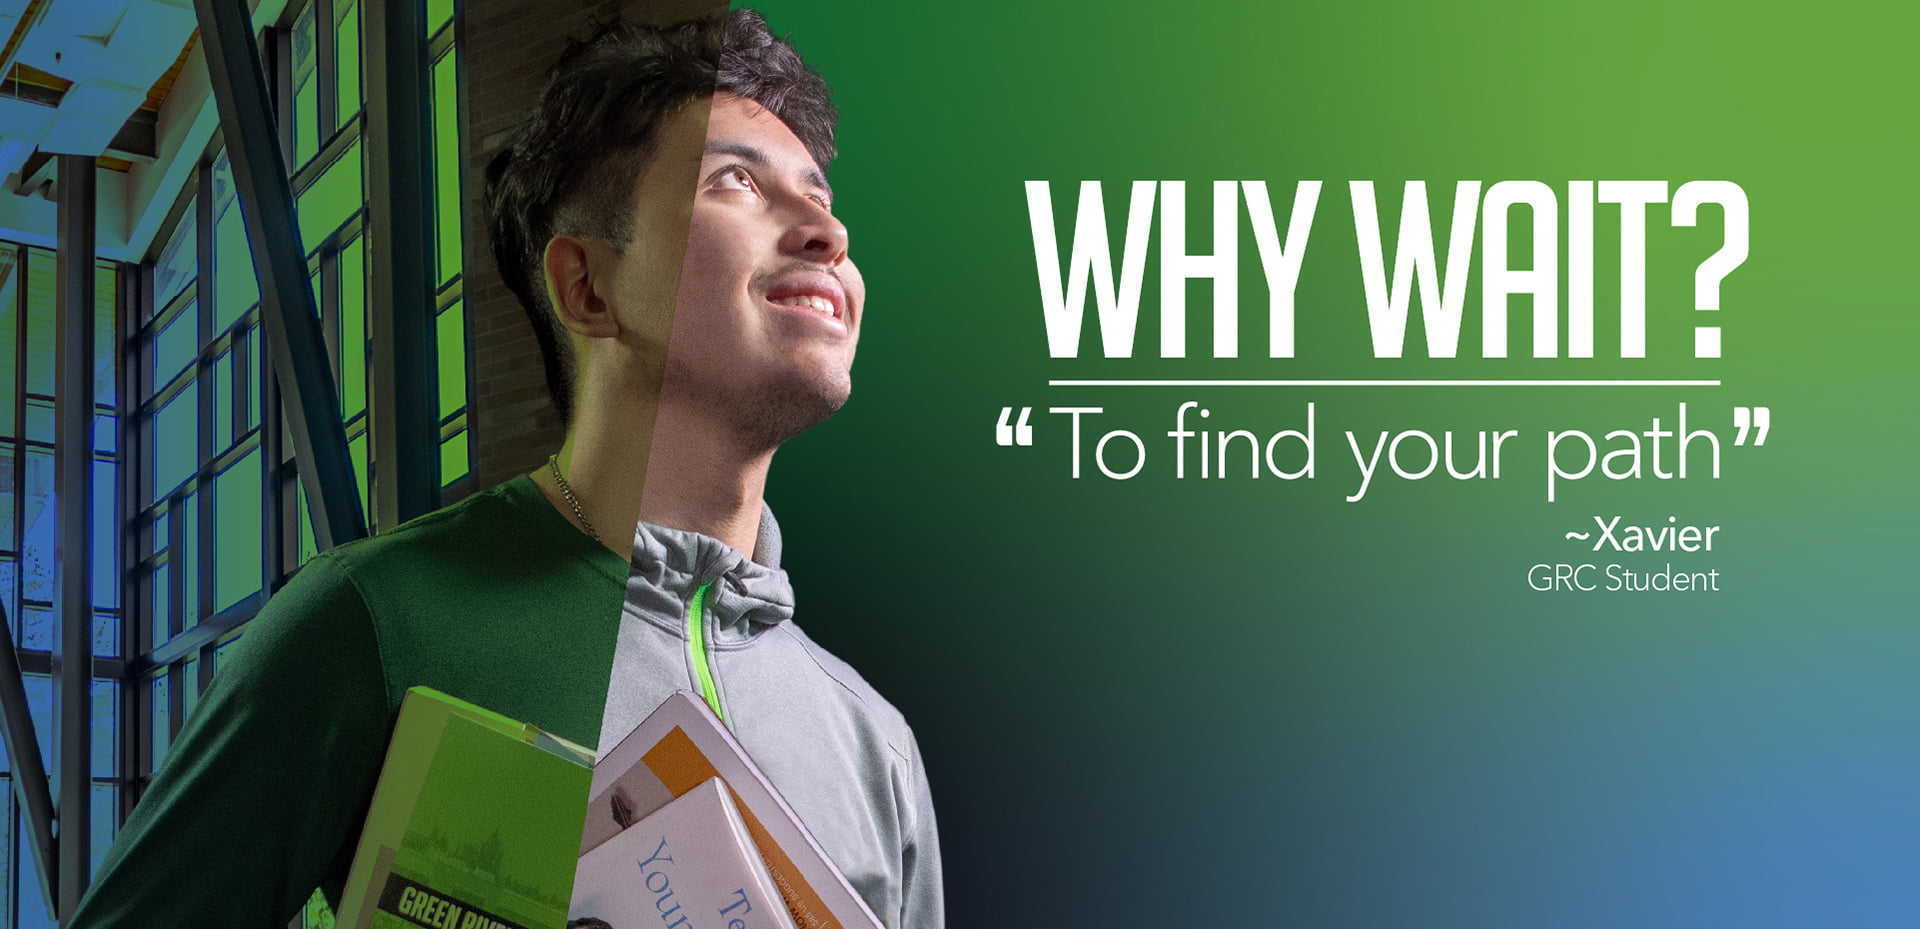 "Green River College student Xavier whose image is split into two with one side showing him as a student, and the other as an educator with the words ""Why Wait? To find your path""."